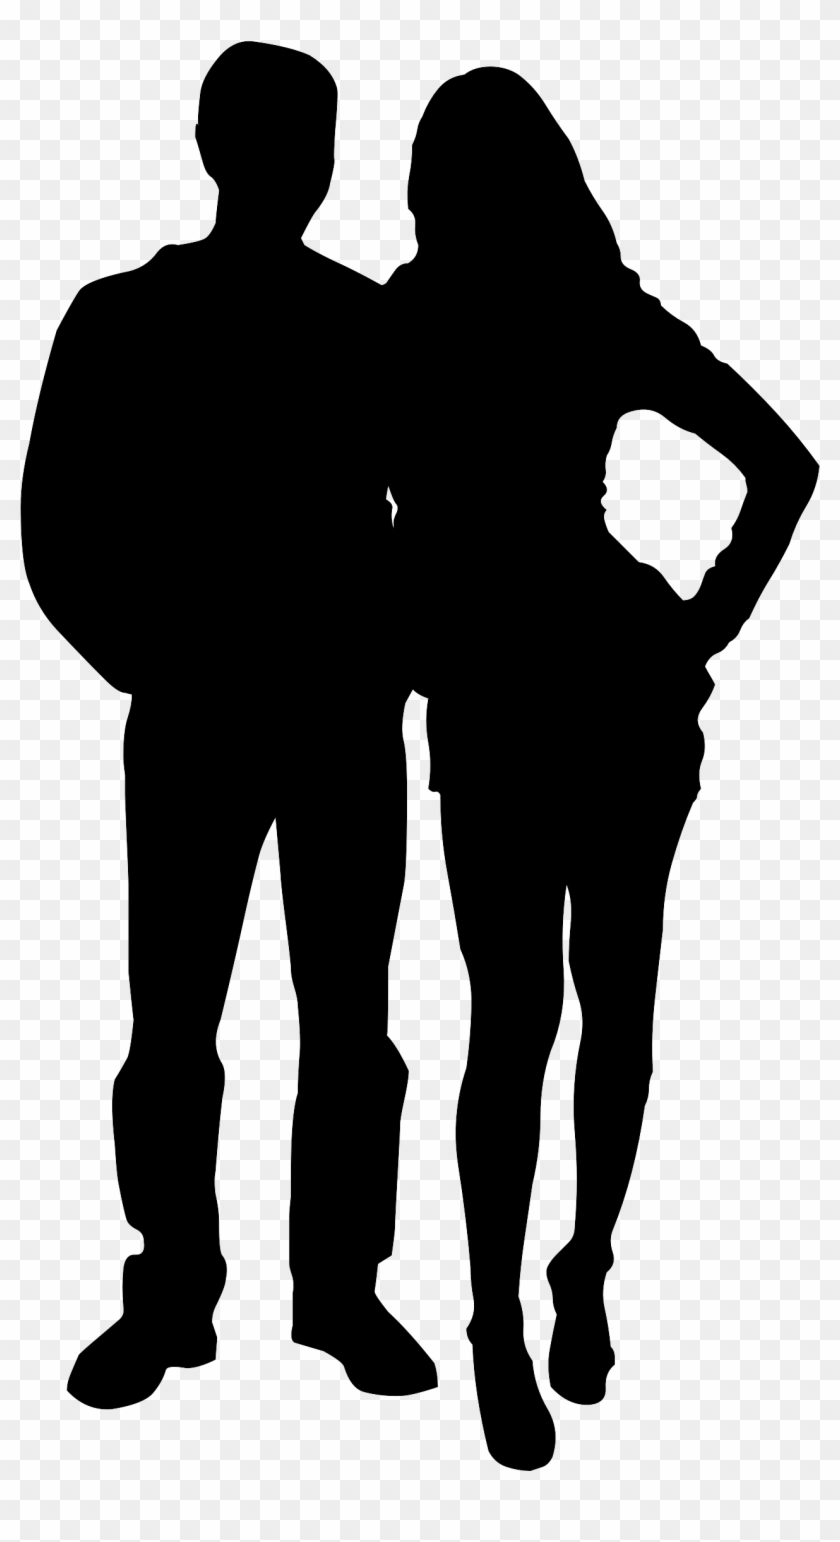 Wedding, Couple, Silhouette, Love, Relationship - Man And Woman Silhouette Png #352973